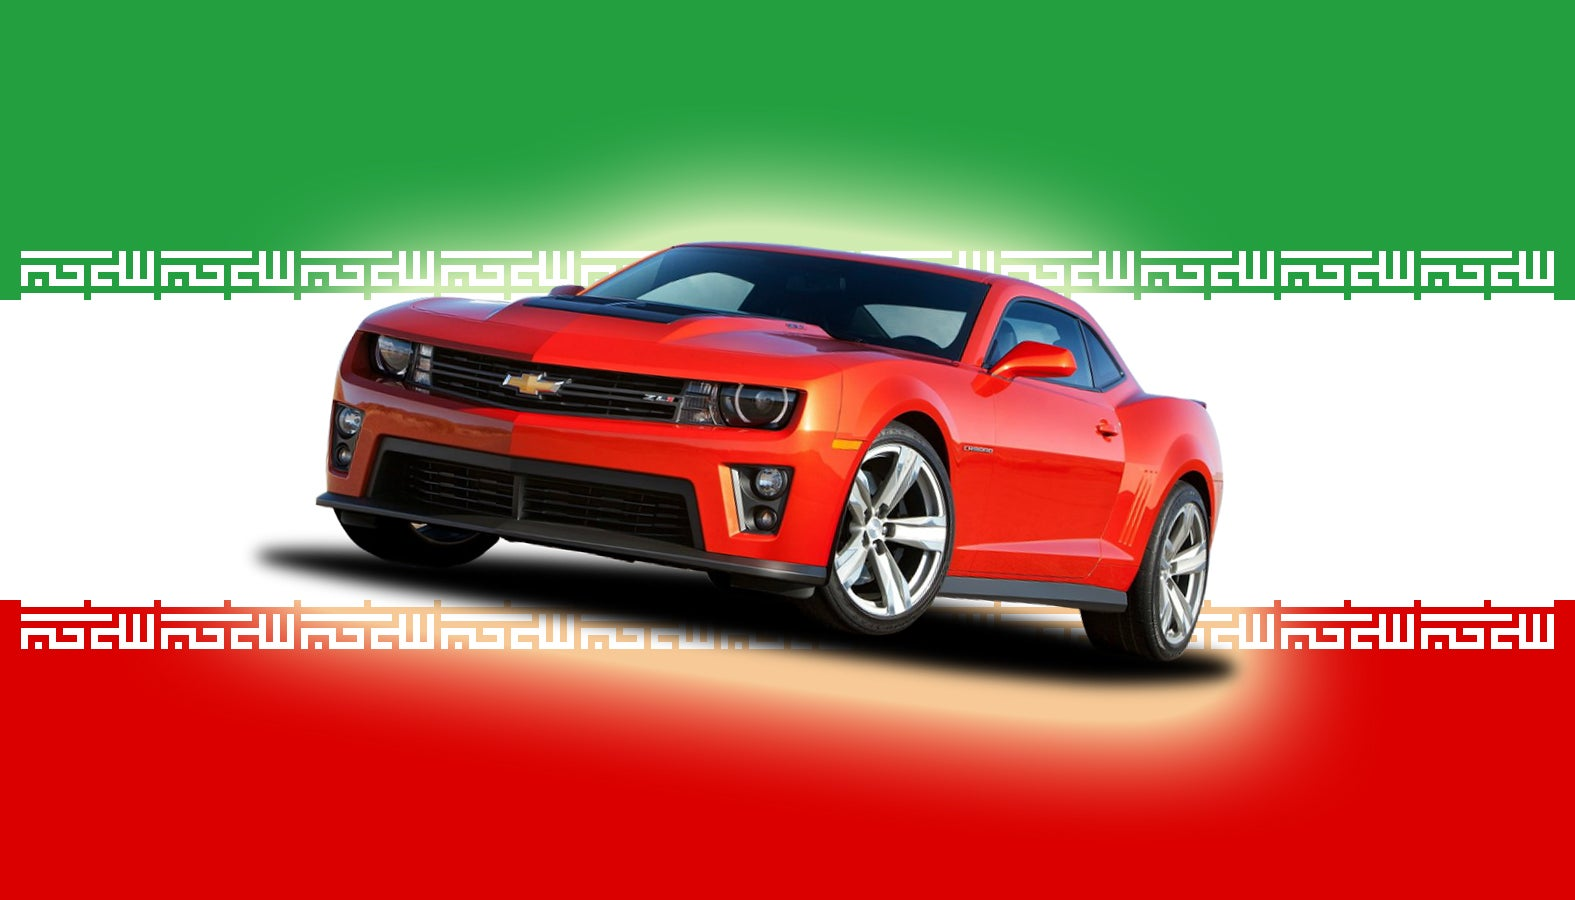 Death To Tires! Iranians Are Going Crazy For The Chevy Camaro